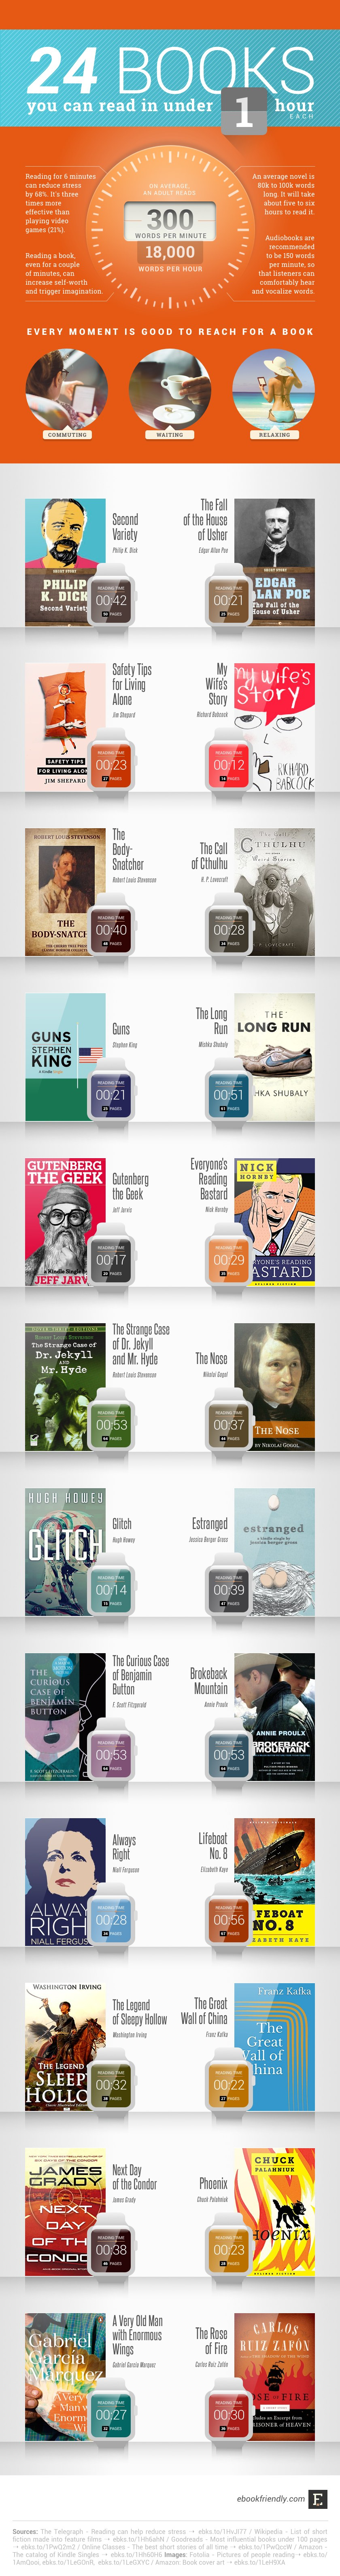 Books you can read under hour each - #infographic